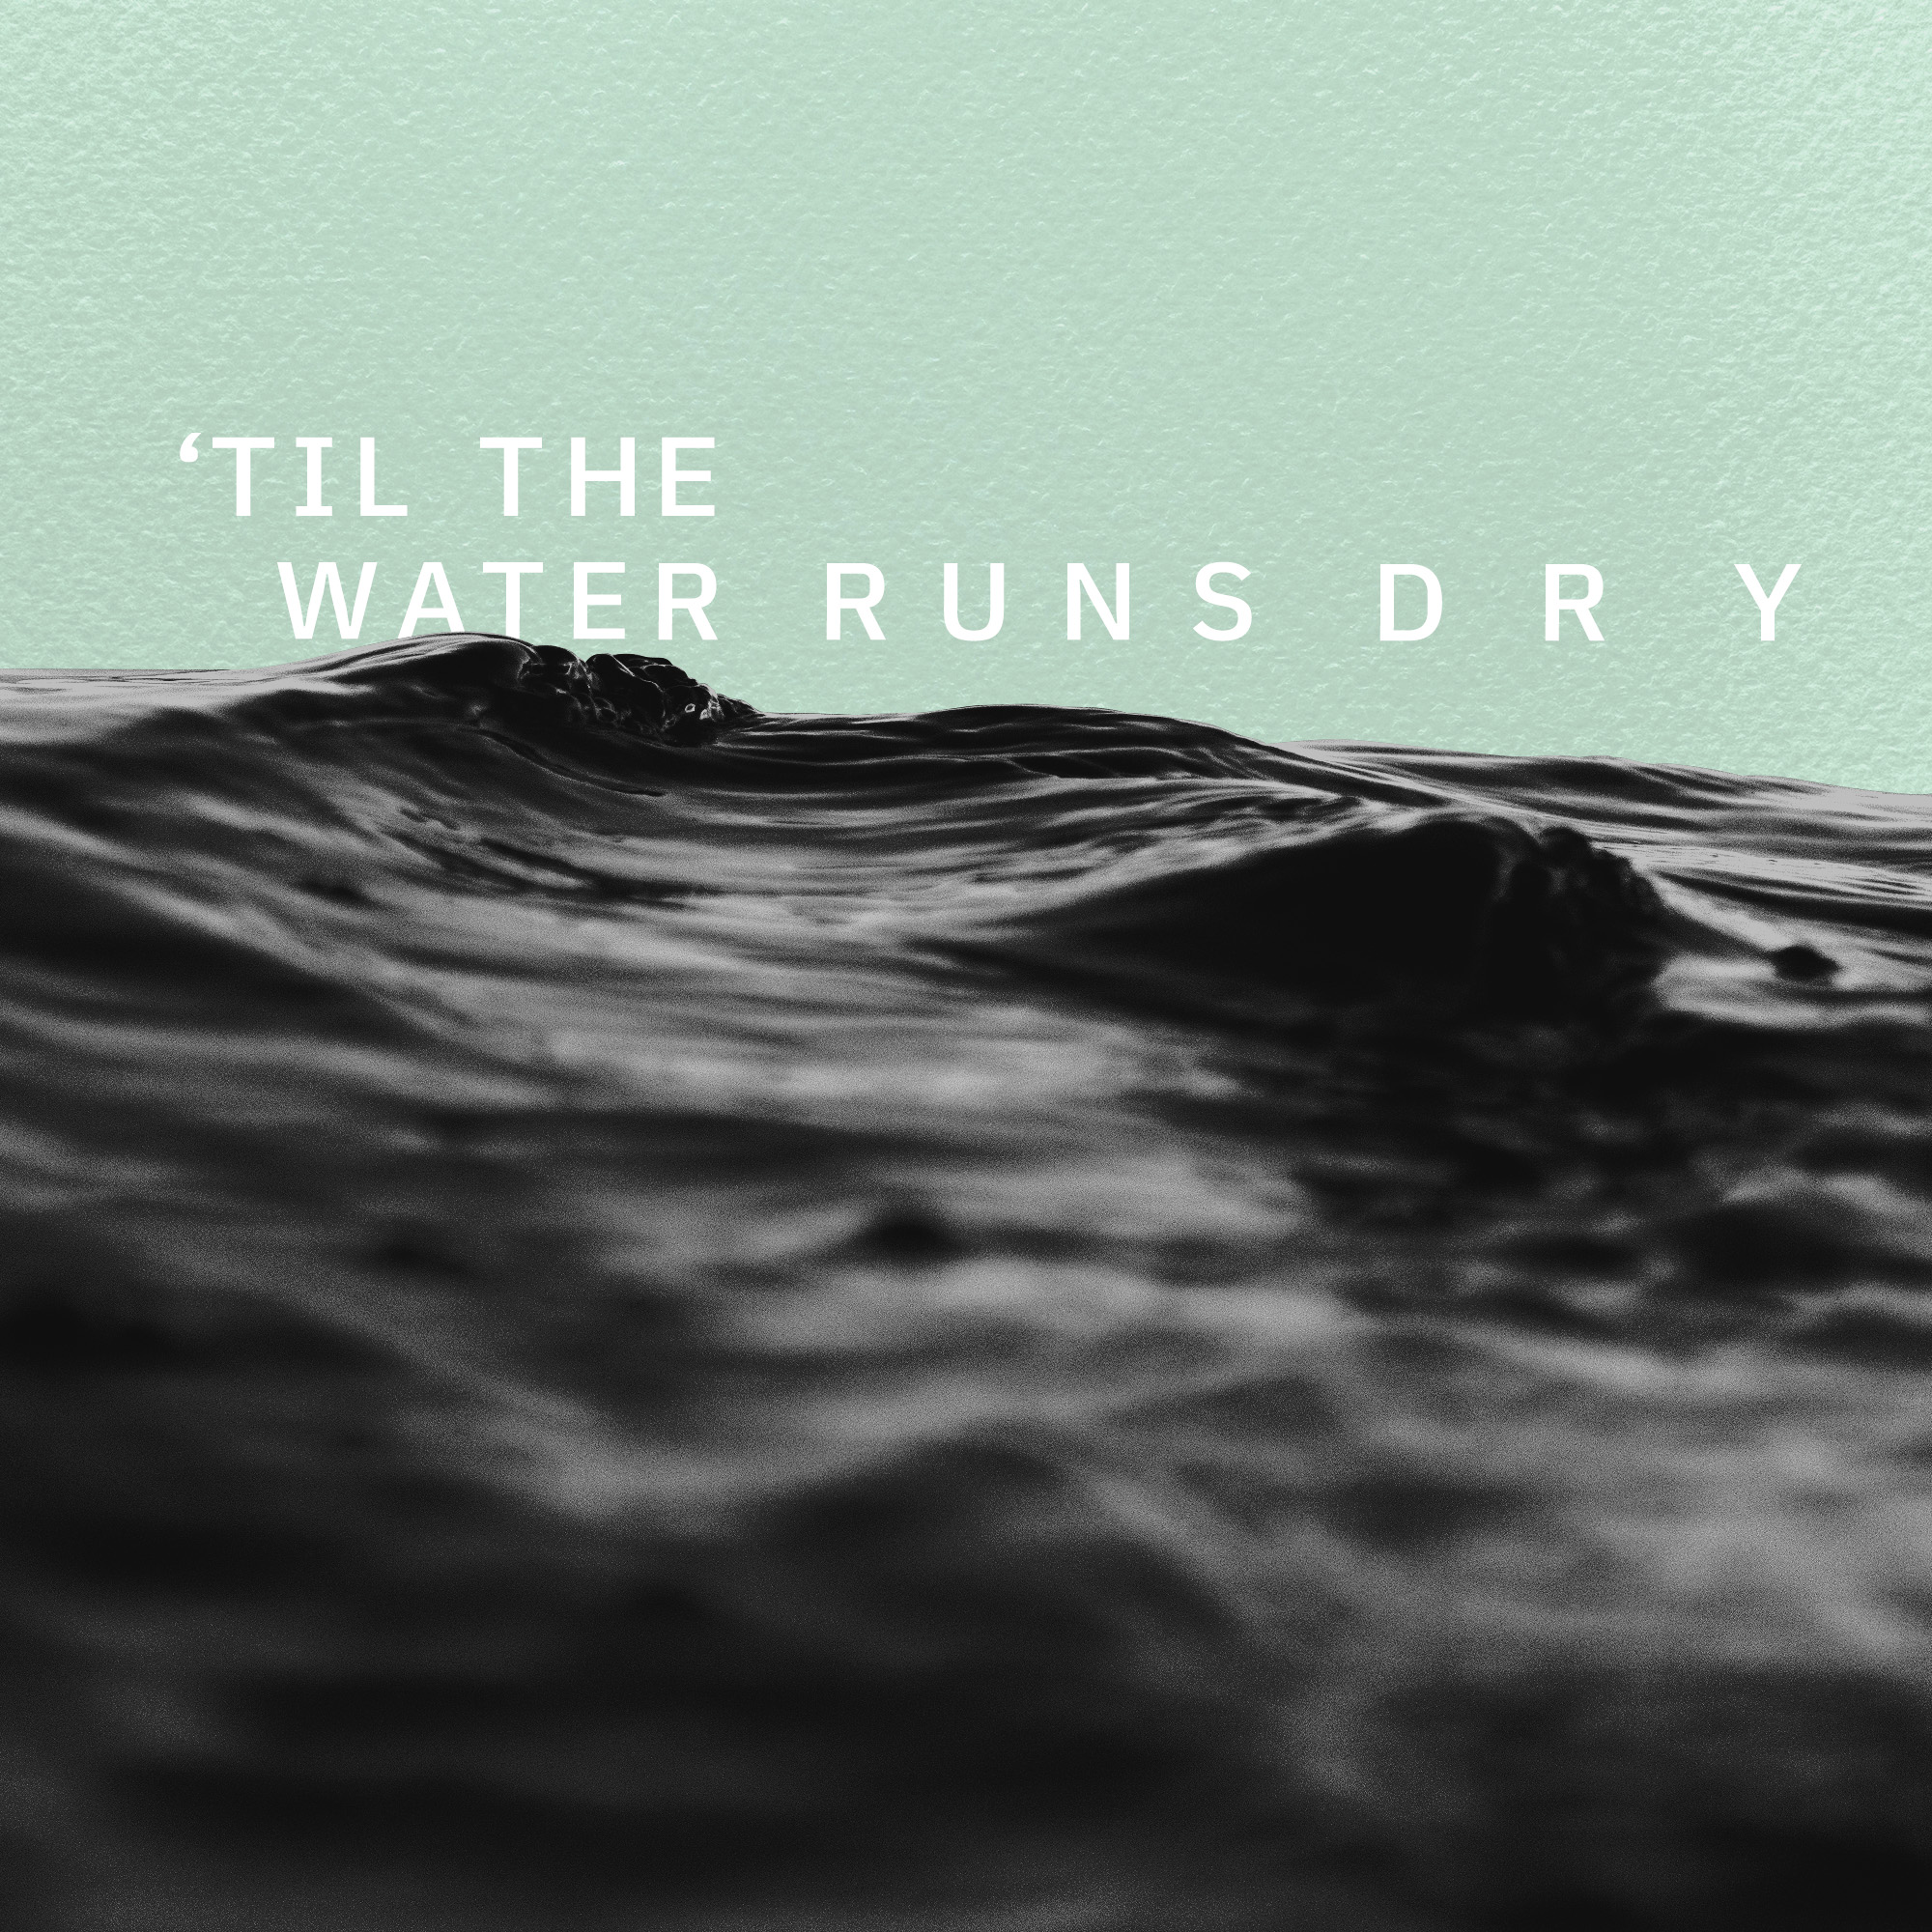 'til the Water Runs Dry - a song by Craig Haller